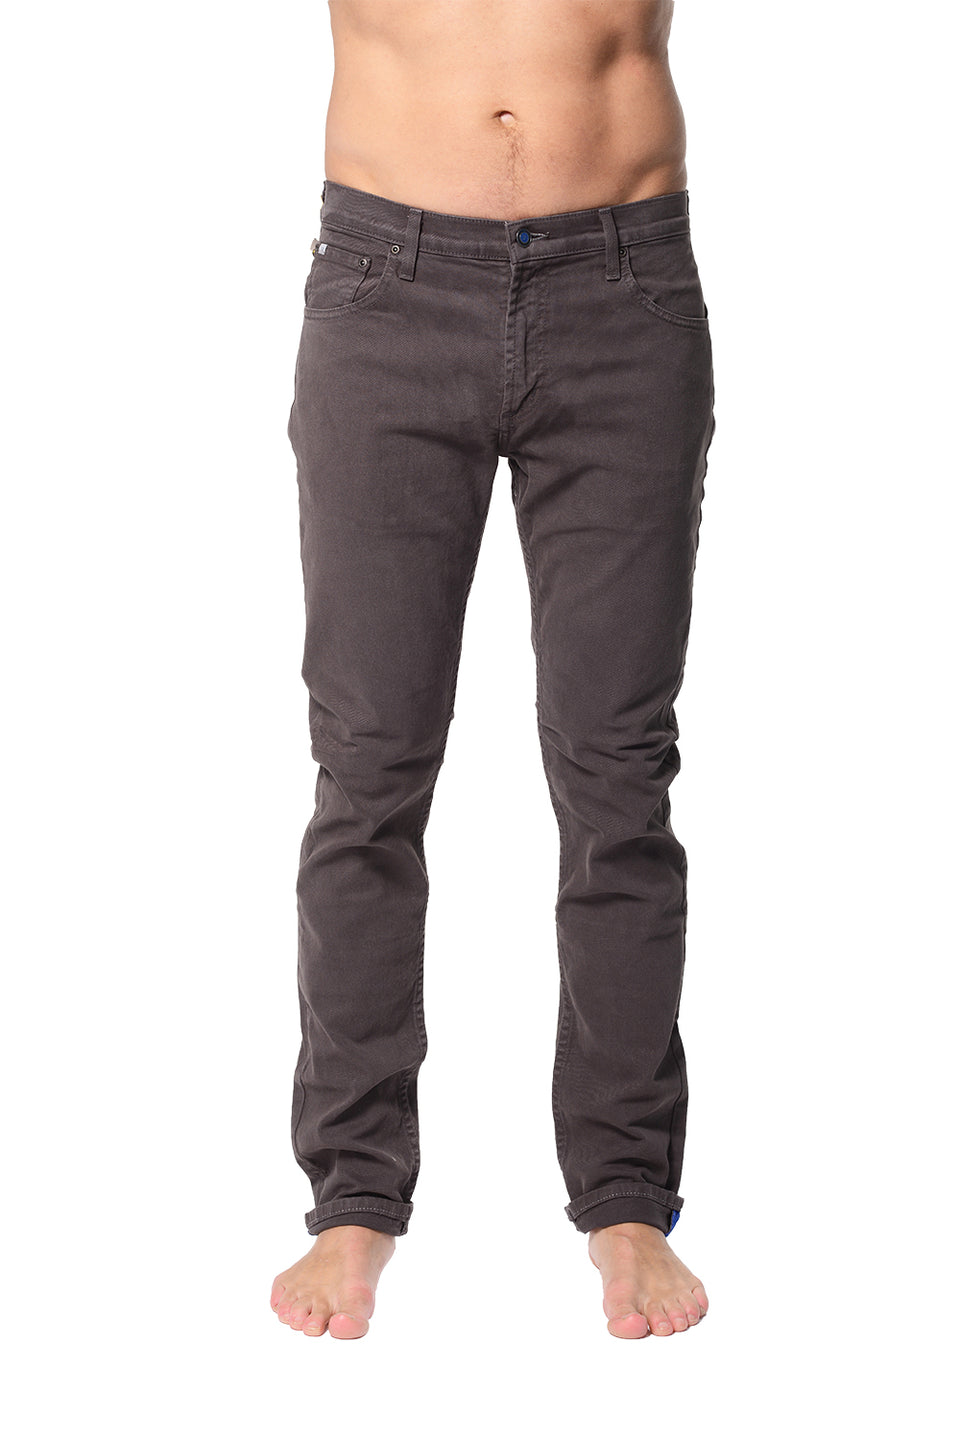 5 Pocket Slim Buck - Dark Grey